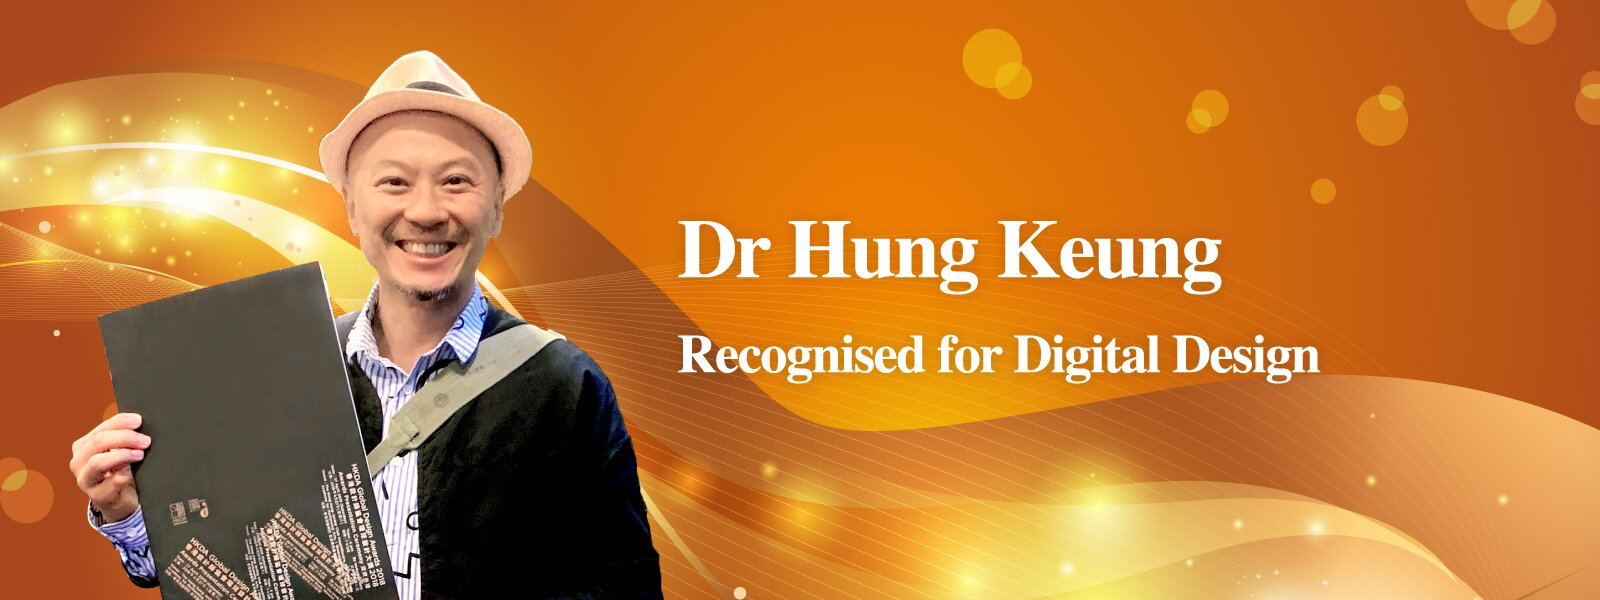 Dr Hung Keung Recognised for Digital Design